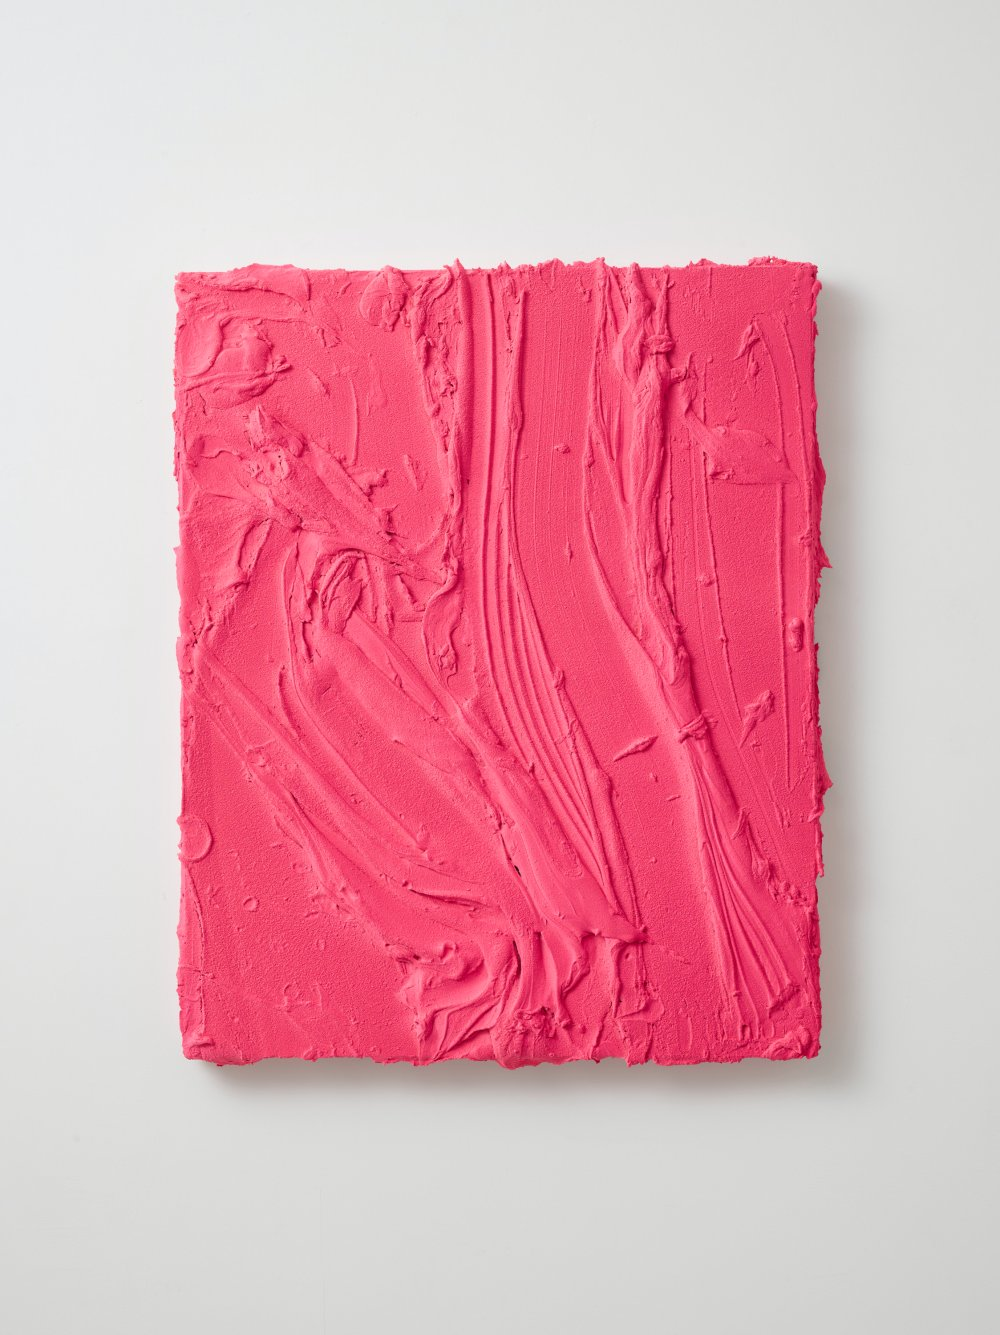 Untitled (Fluorescent flame red / Rosso laccato)